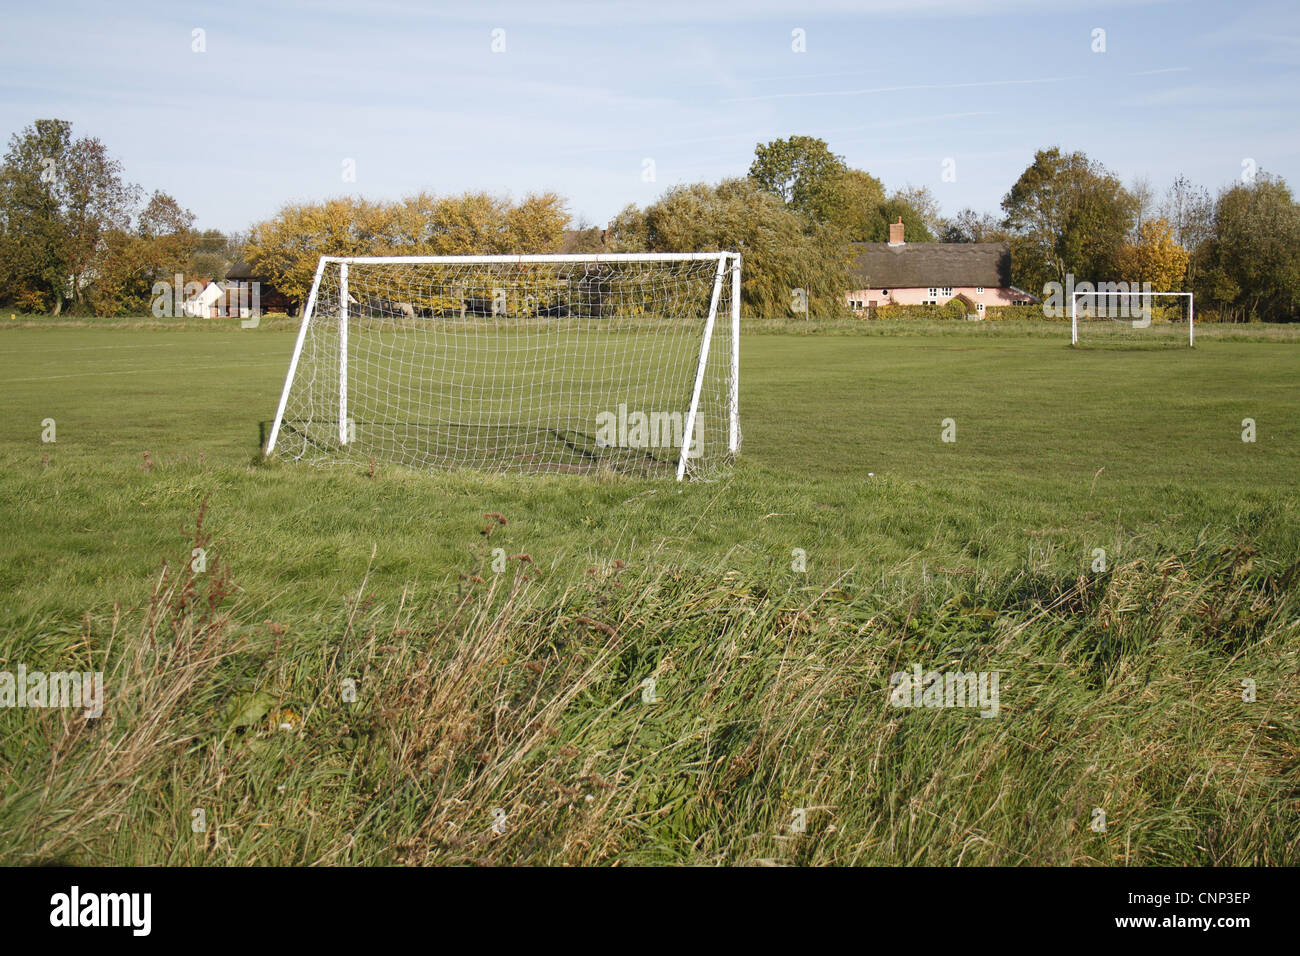 Goal posts on village football pitch, The Carnser, Mellis Common, Mellis, Suffolk, England, october - Stock Image